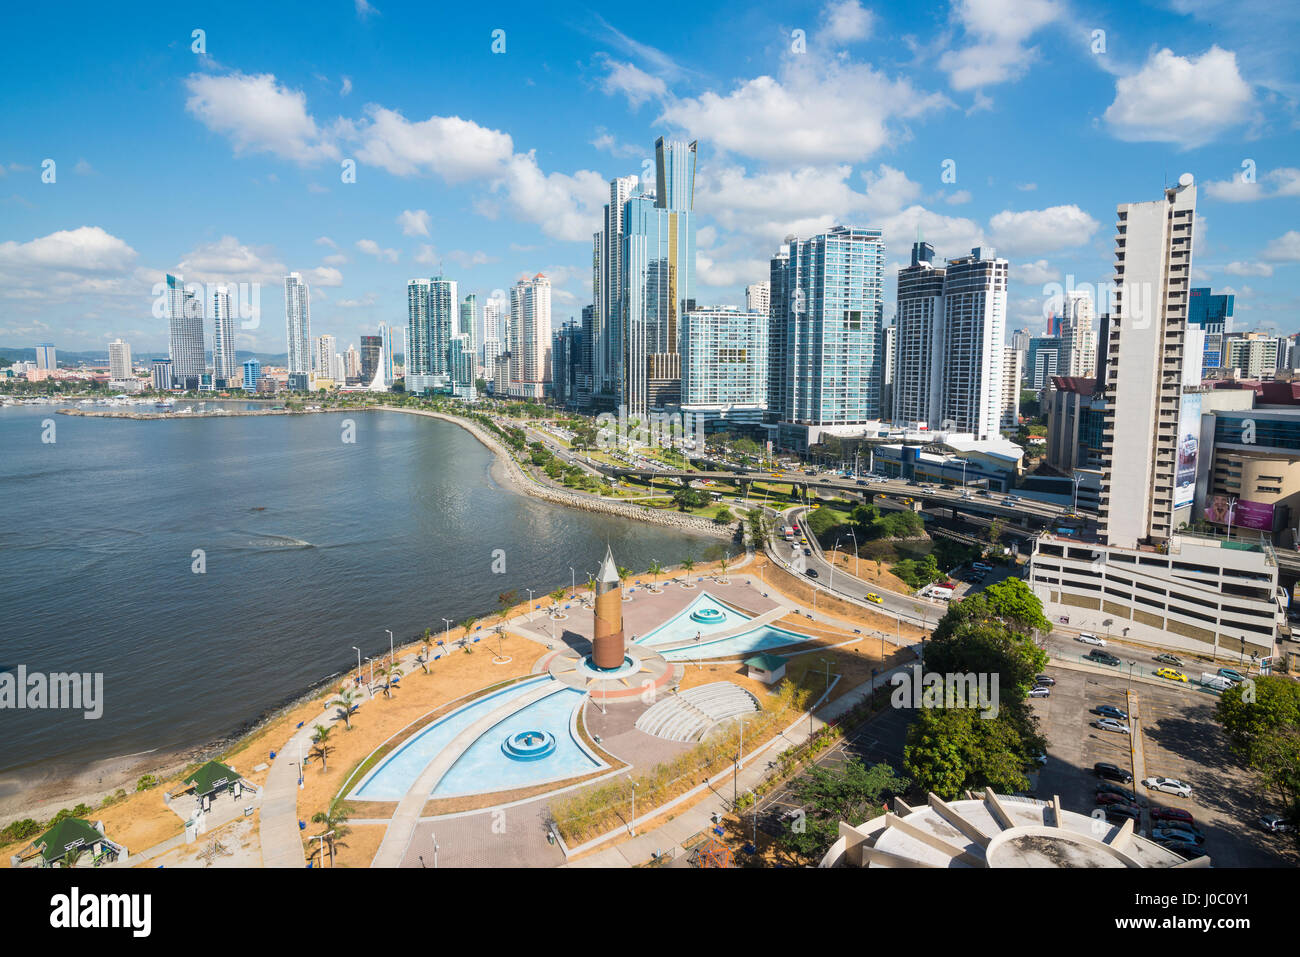 The skyline of Panama City, Panama, Central America - Stock Image